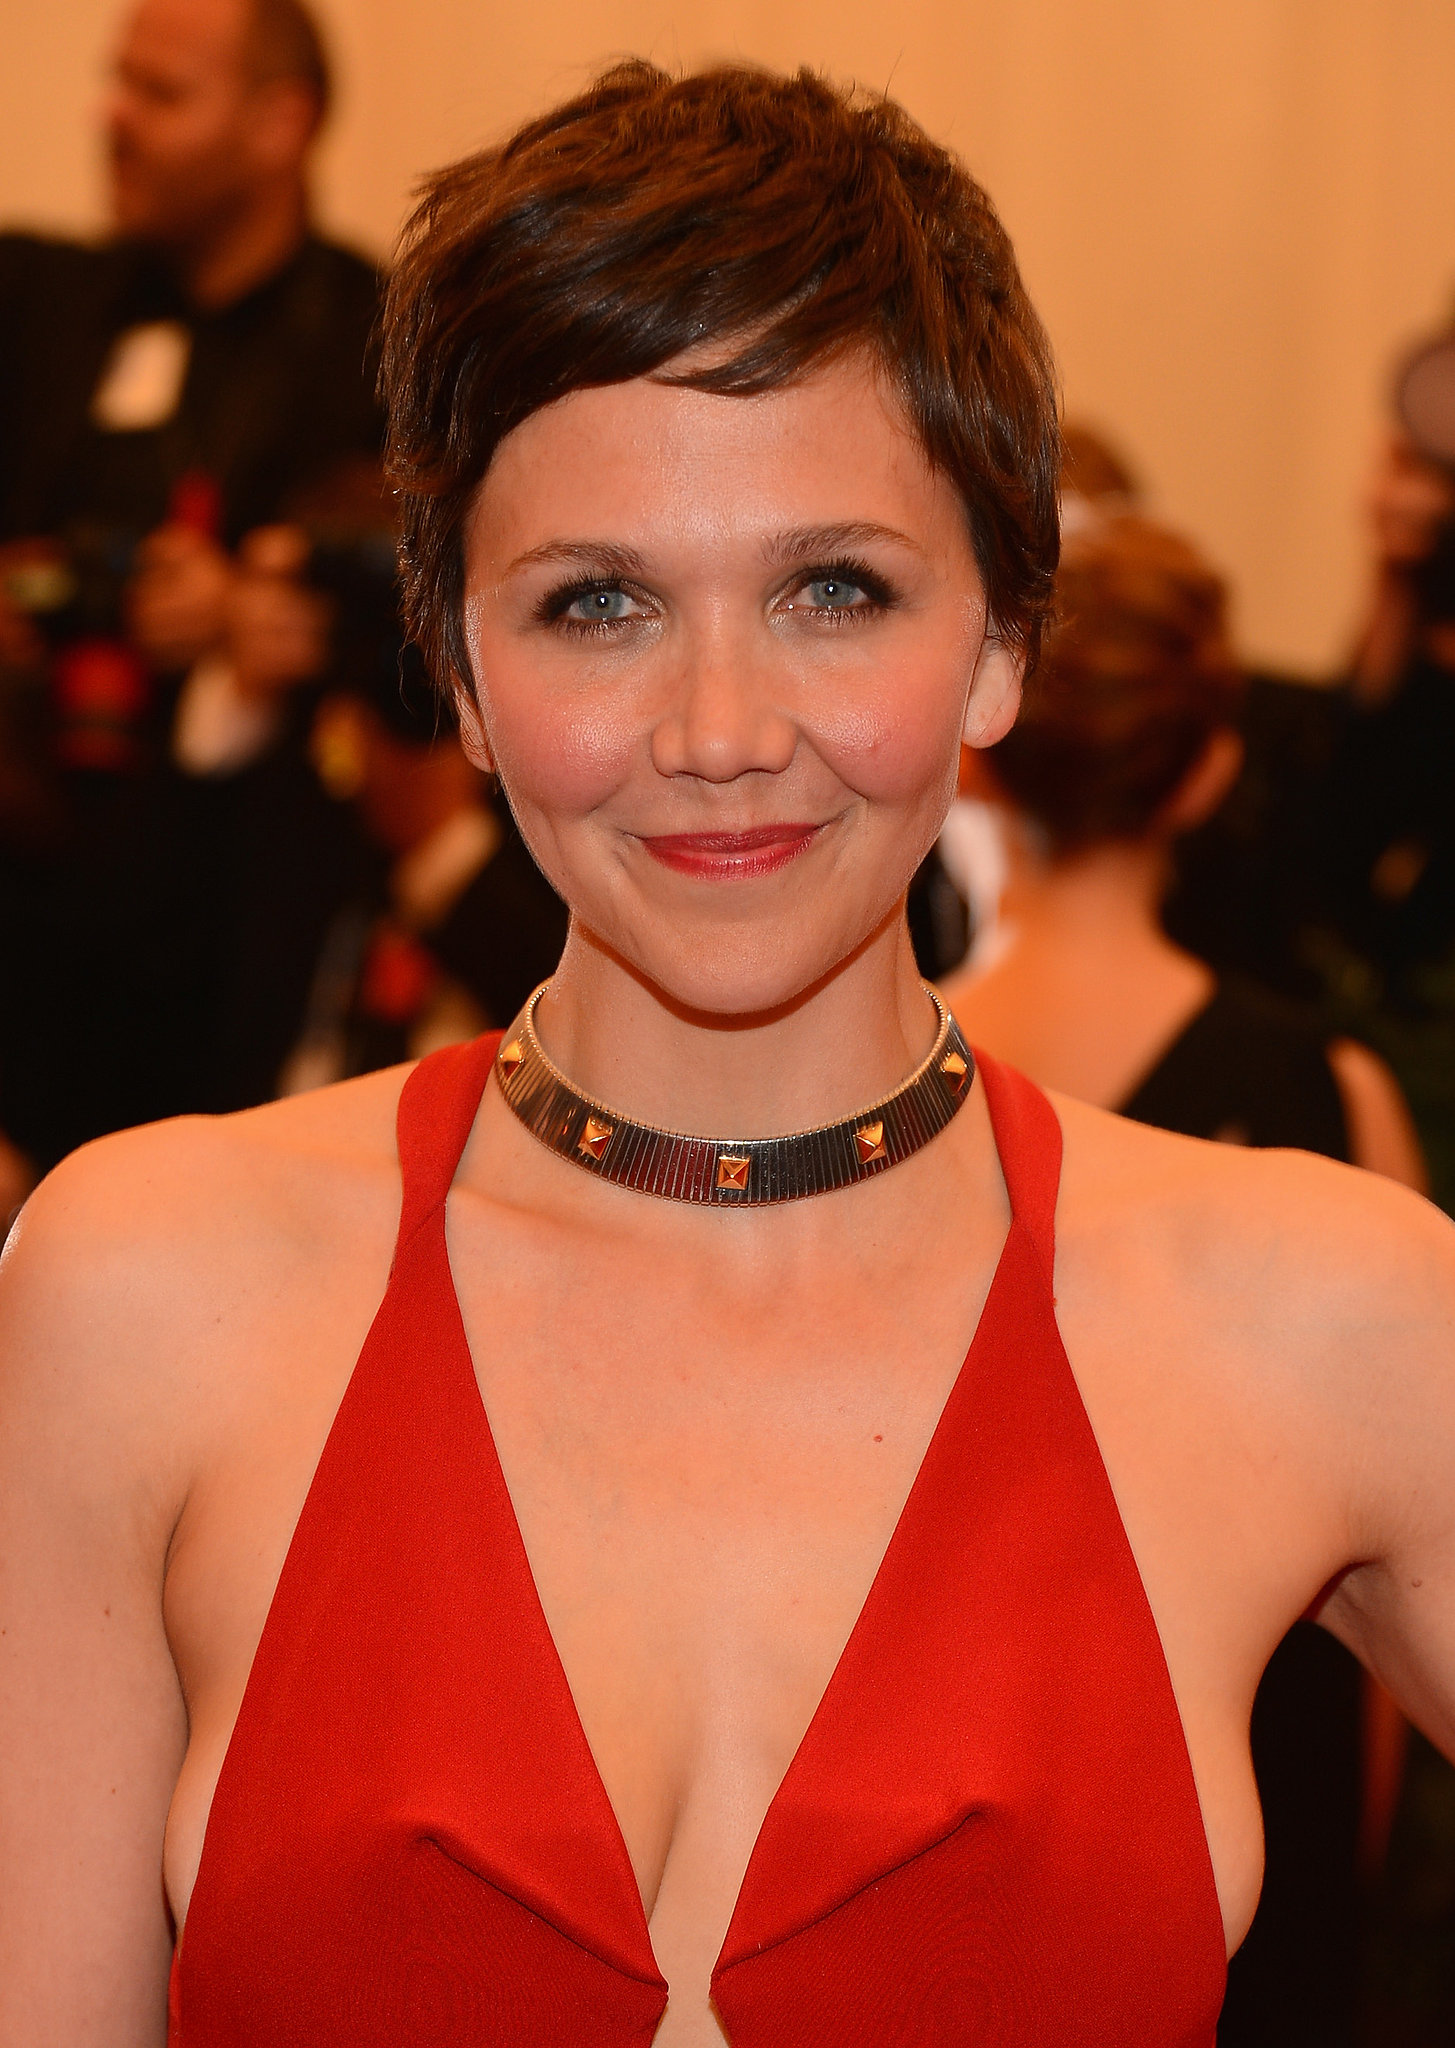 Maggie Gyllenhaal's plunging neckline was the perfect cut ... Maggie Gyllenhaal